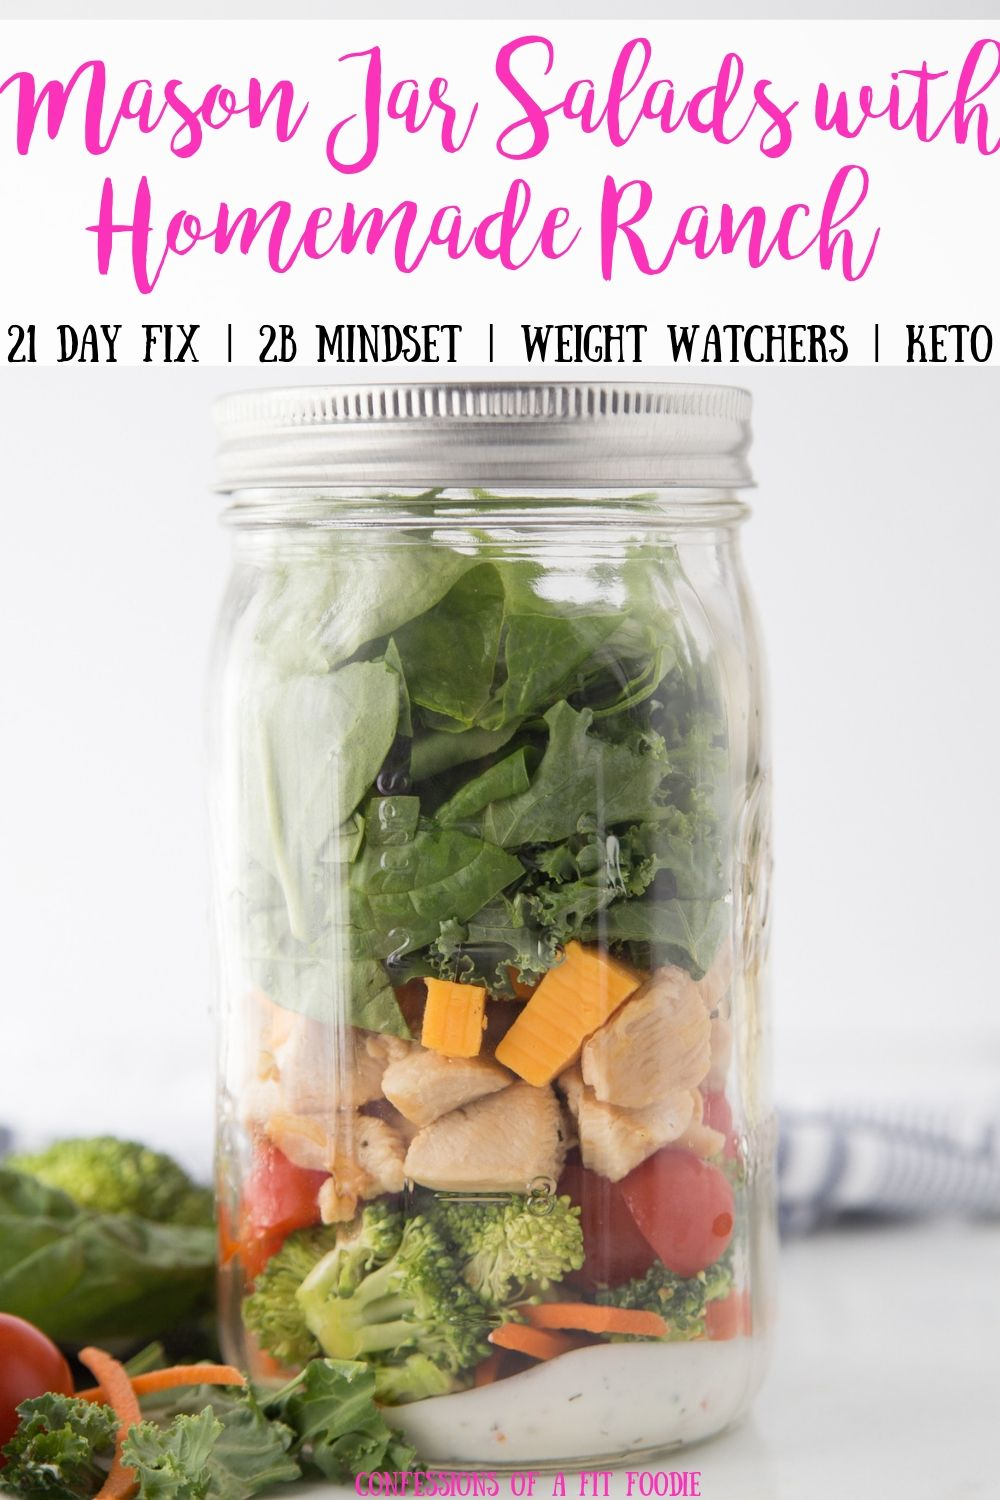 Mason Jar Salad Recipes With Homemade Ranch Confessions Of A Fit Foodie